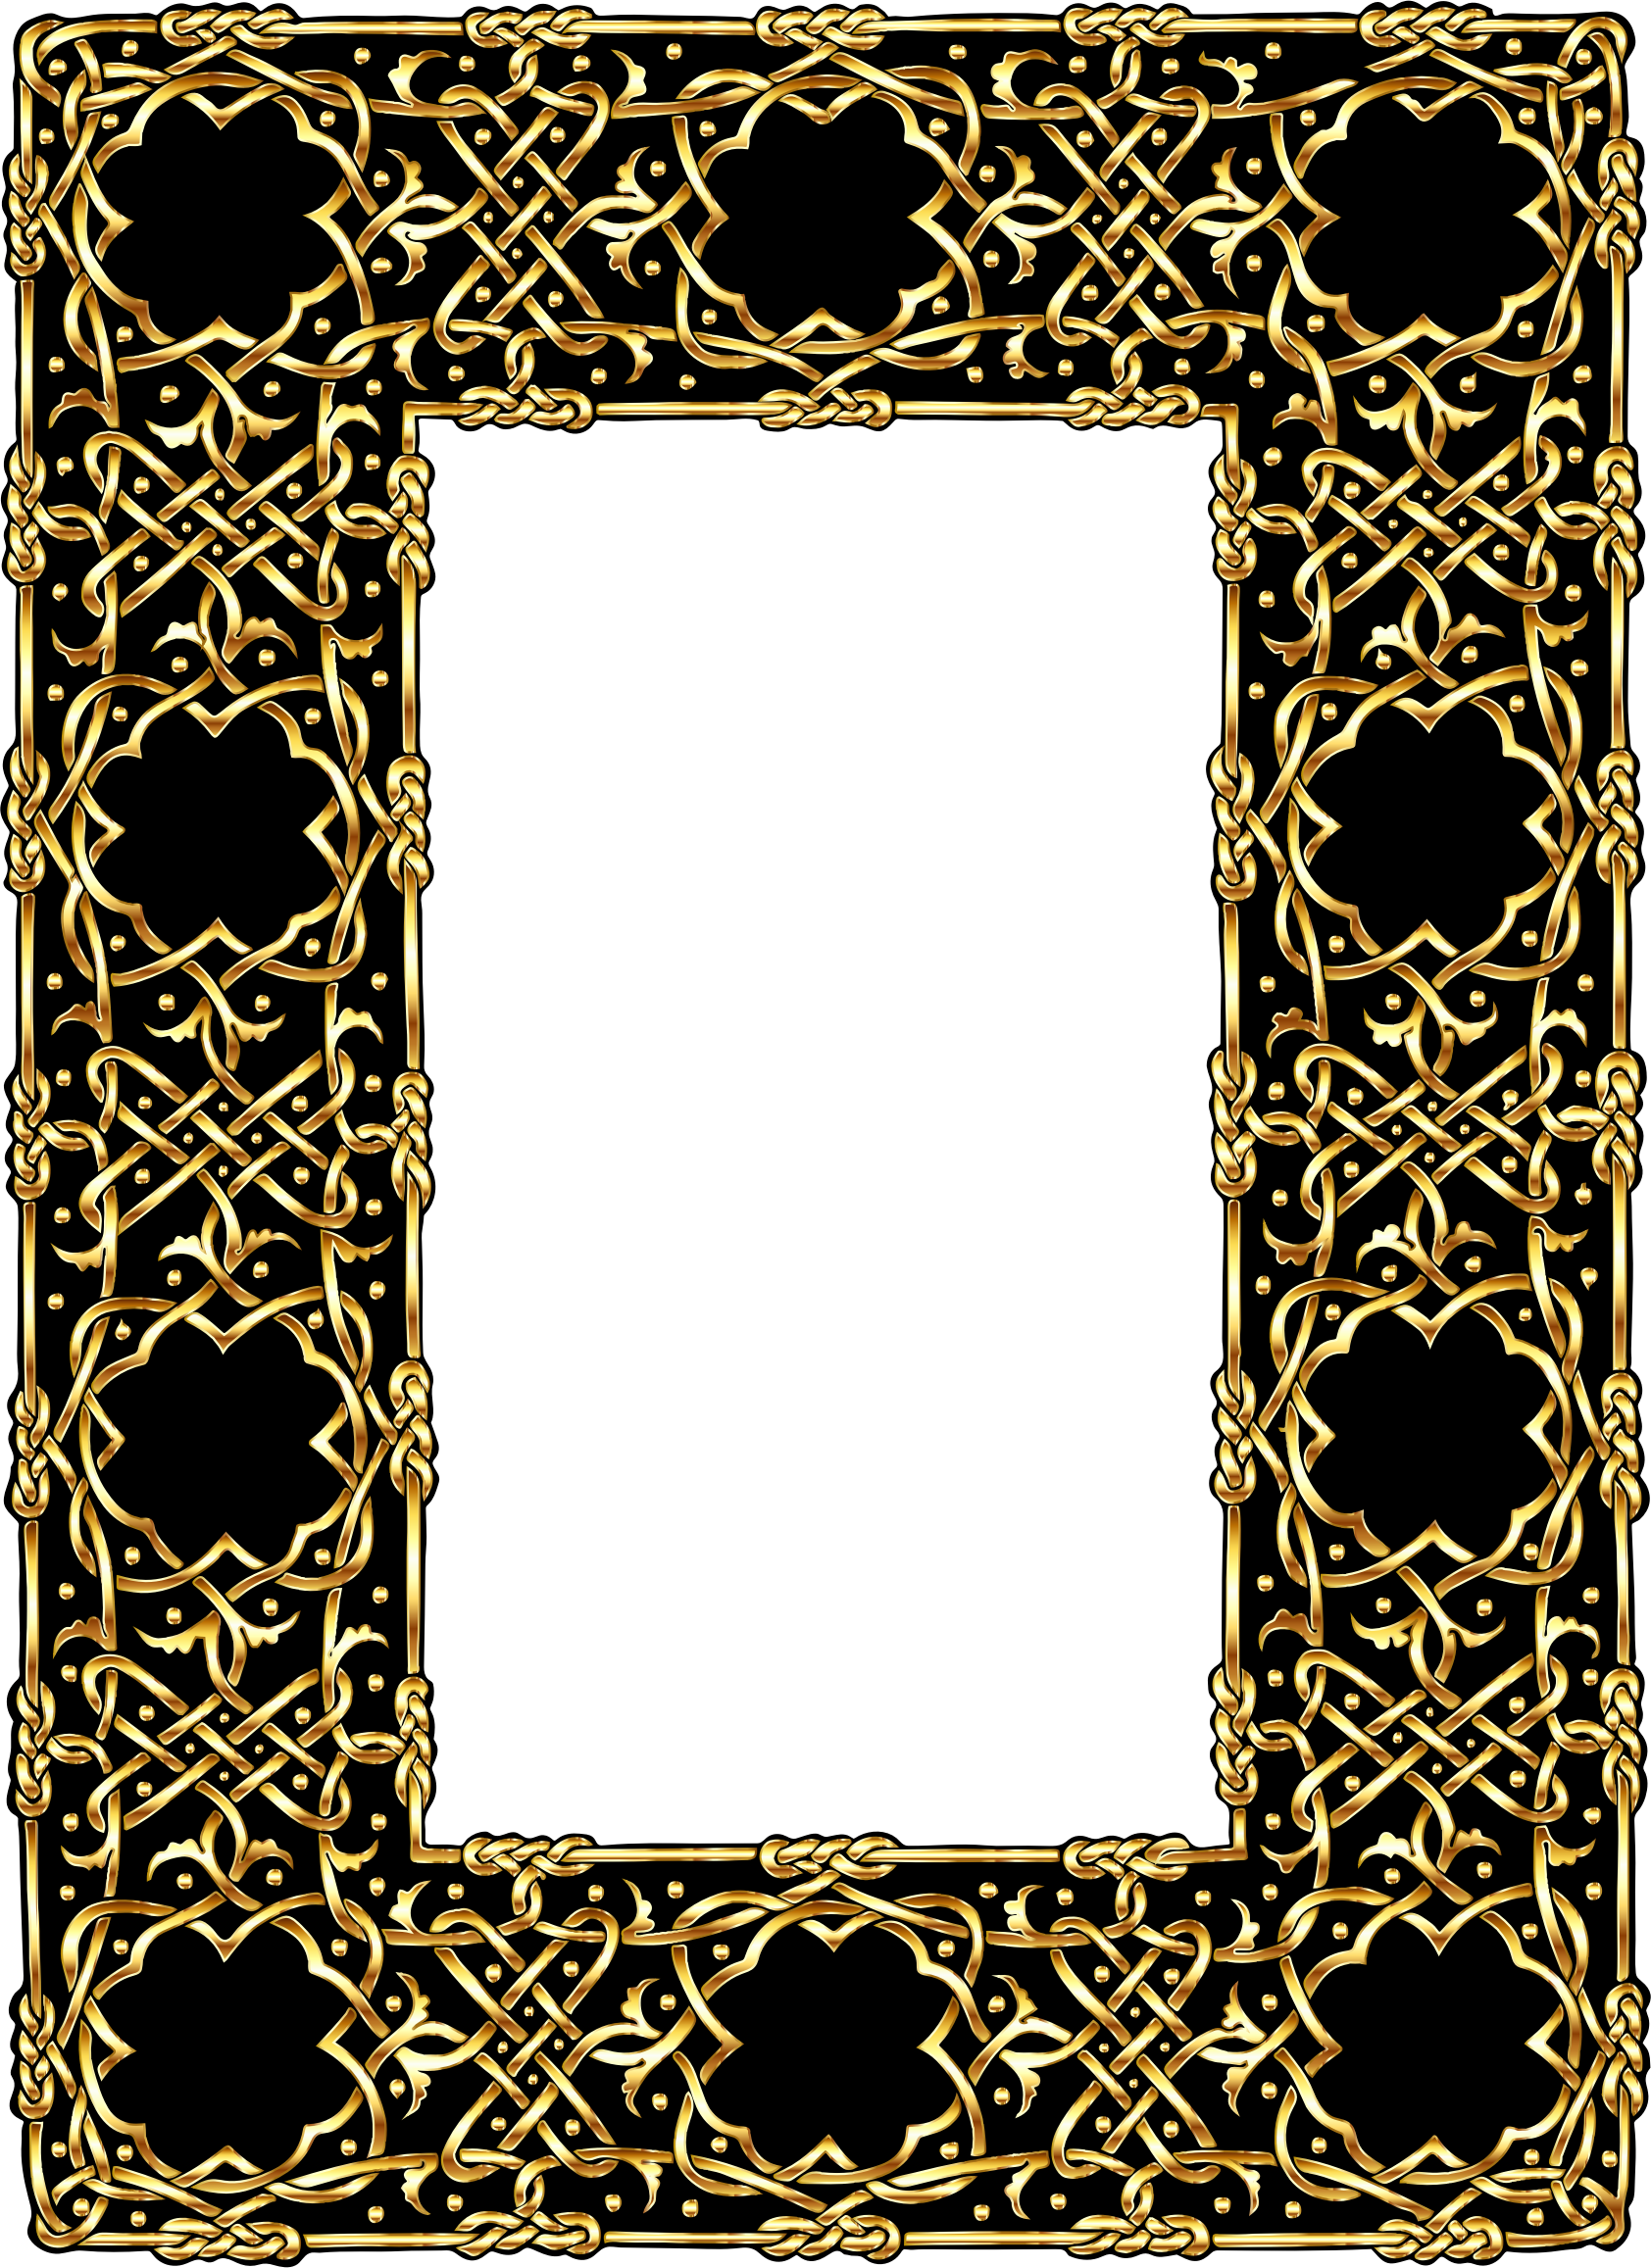 Gold Ornate Geometric Frame 2 by GDJ